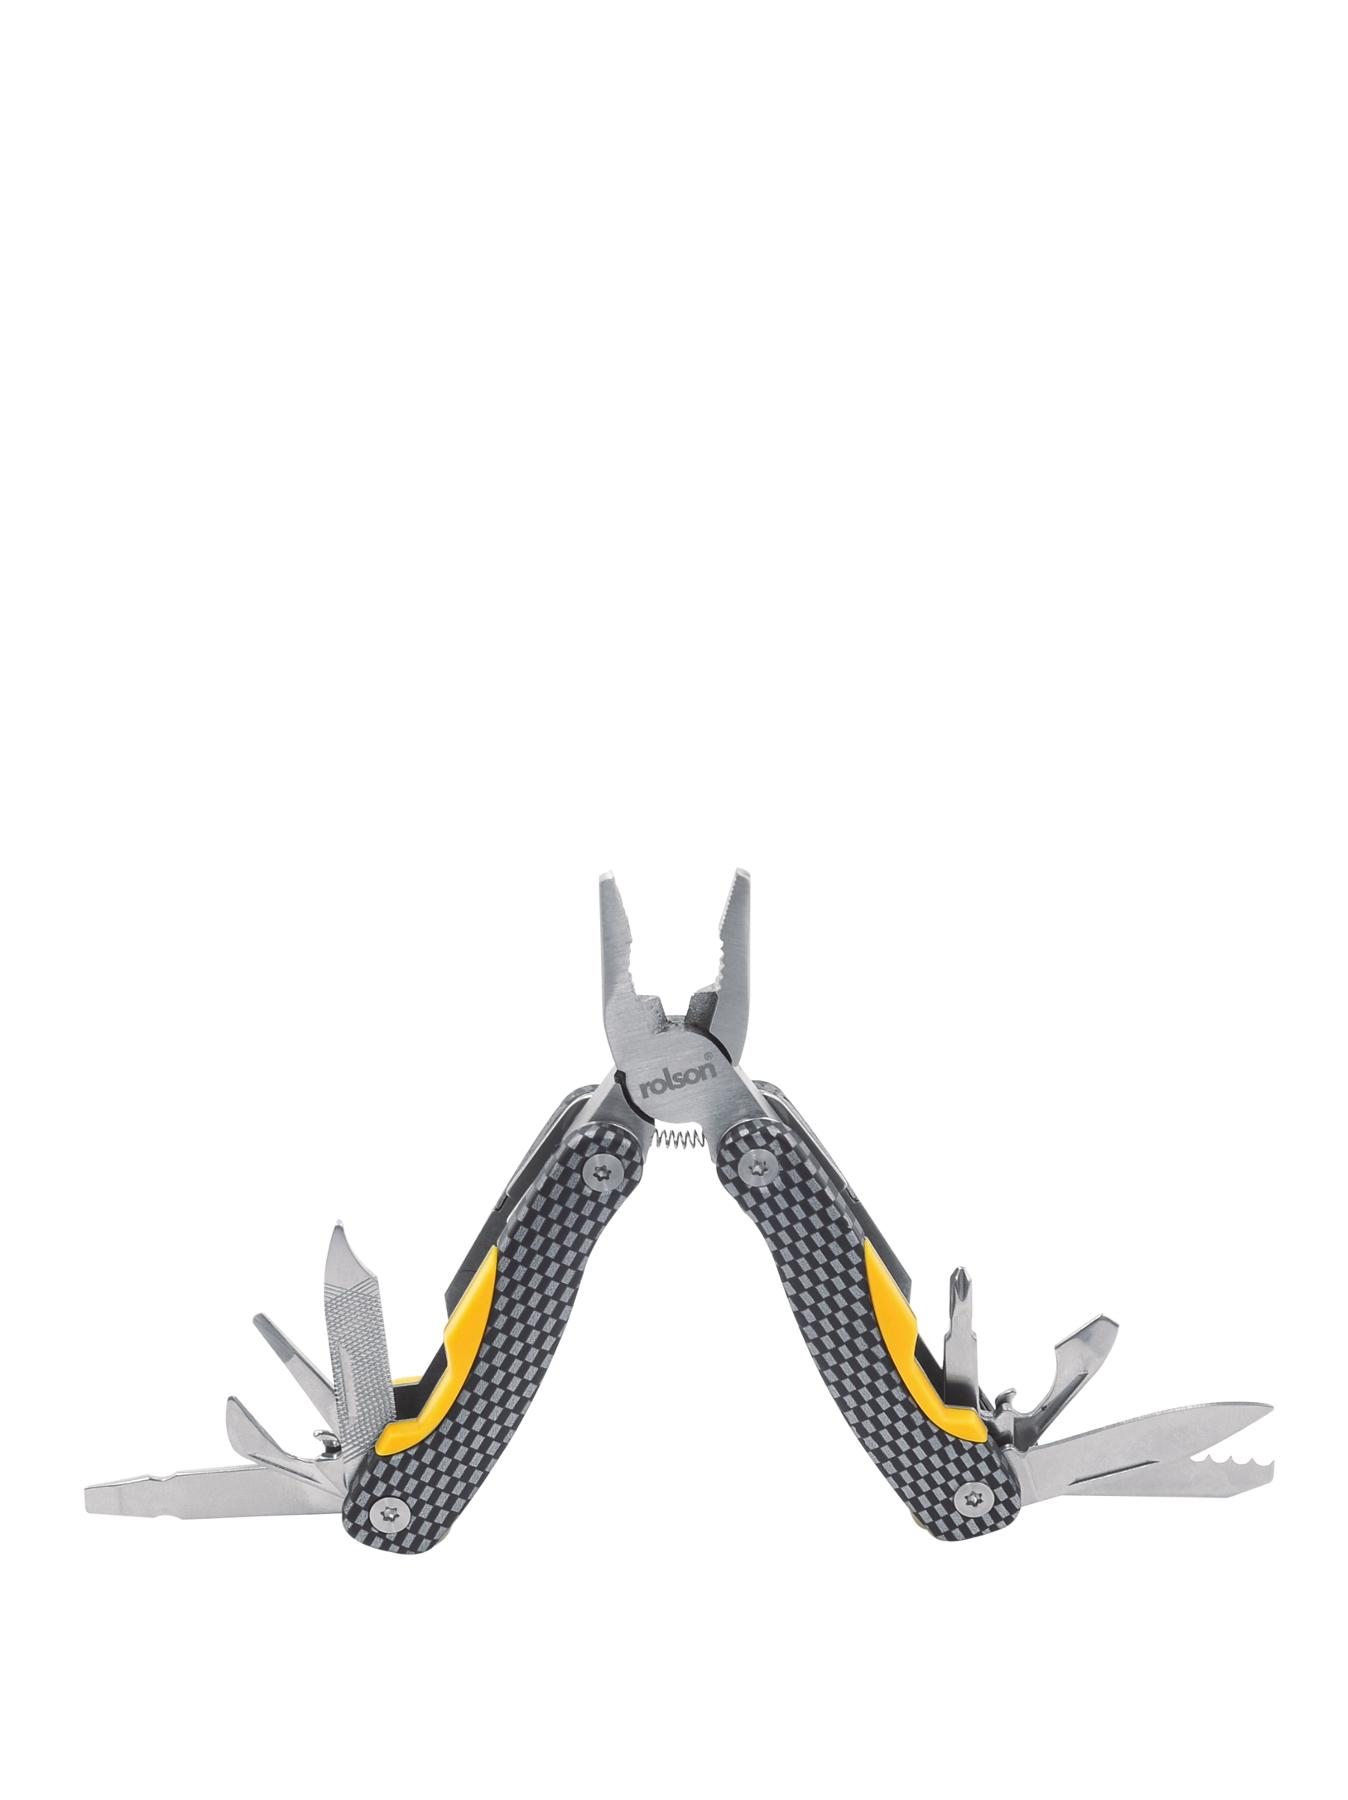 10-in-1 Mini Multi Tool